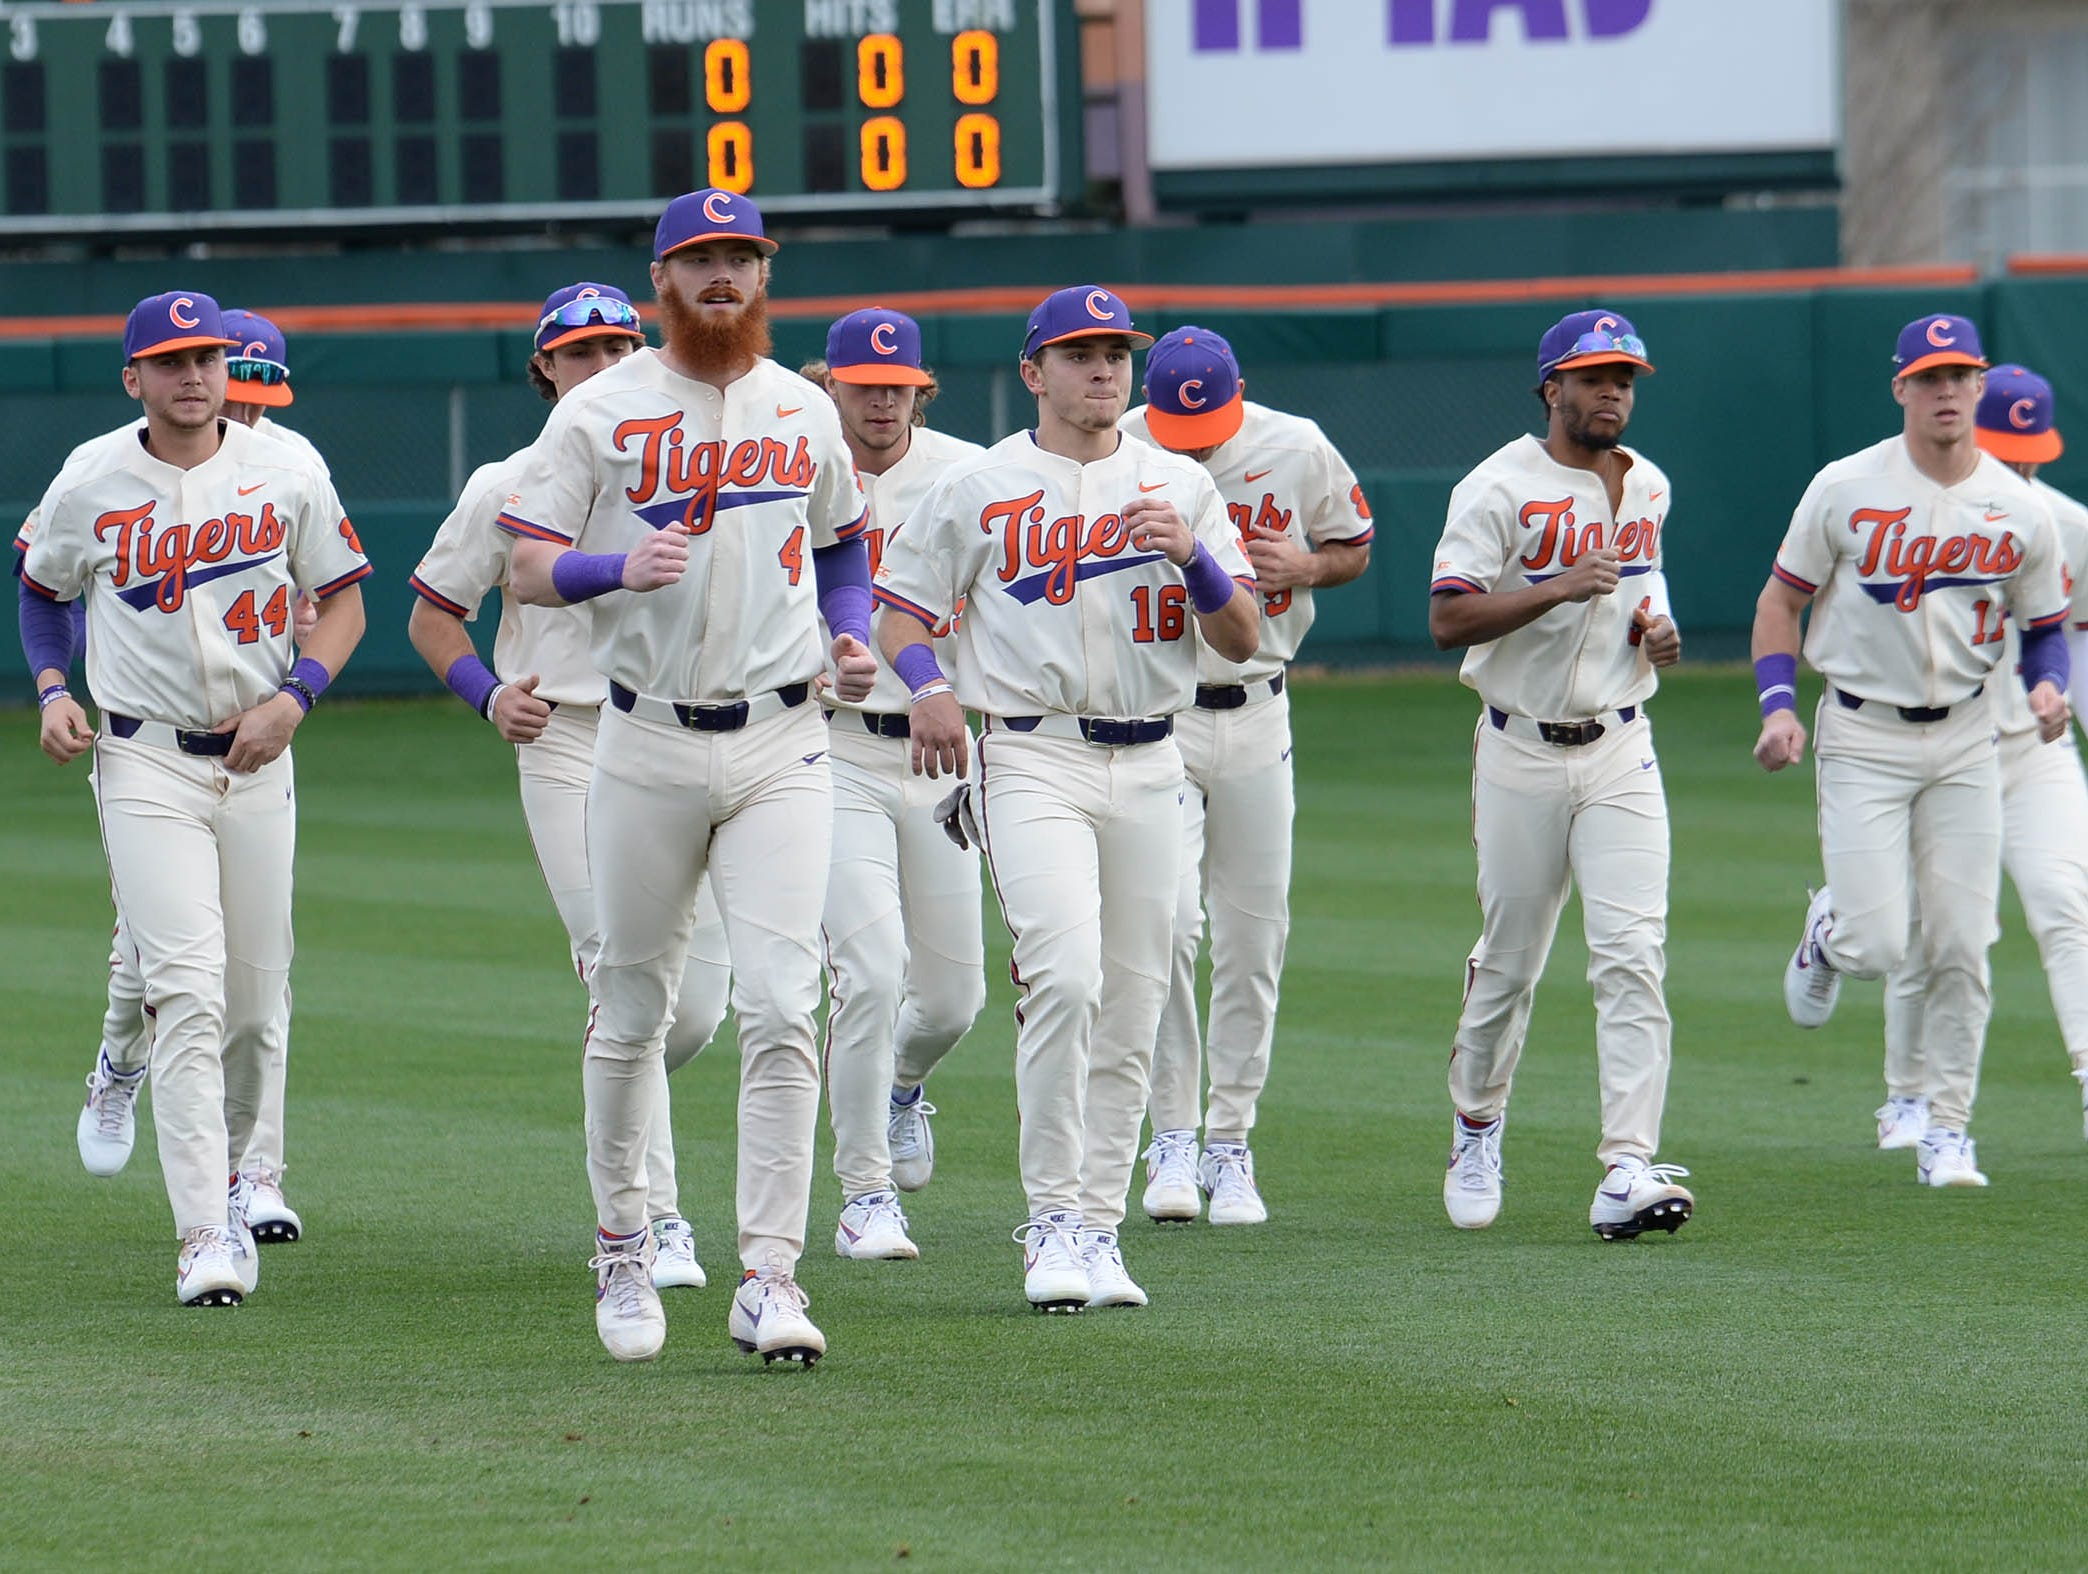 Clemson players warm up before the game with Charlotte at Doug Kingsmore Stadium in Clemson Monday, February 18, 2019.